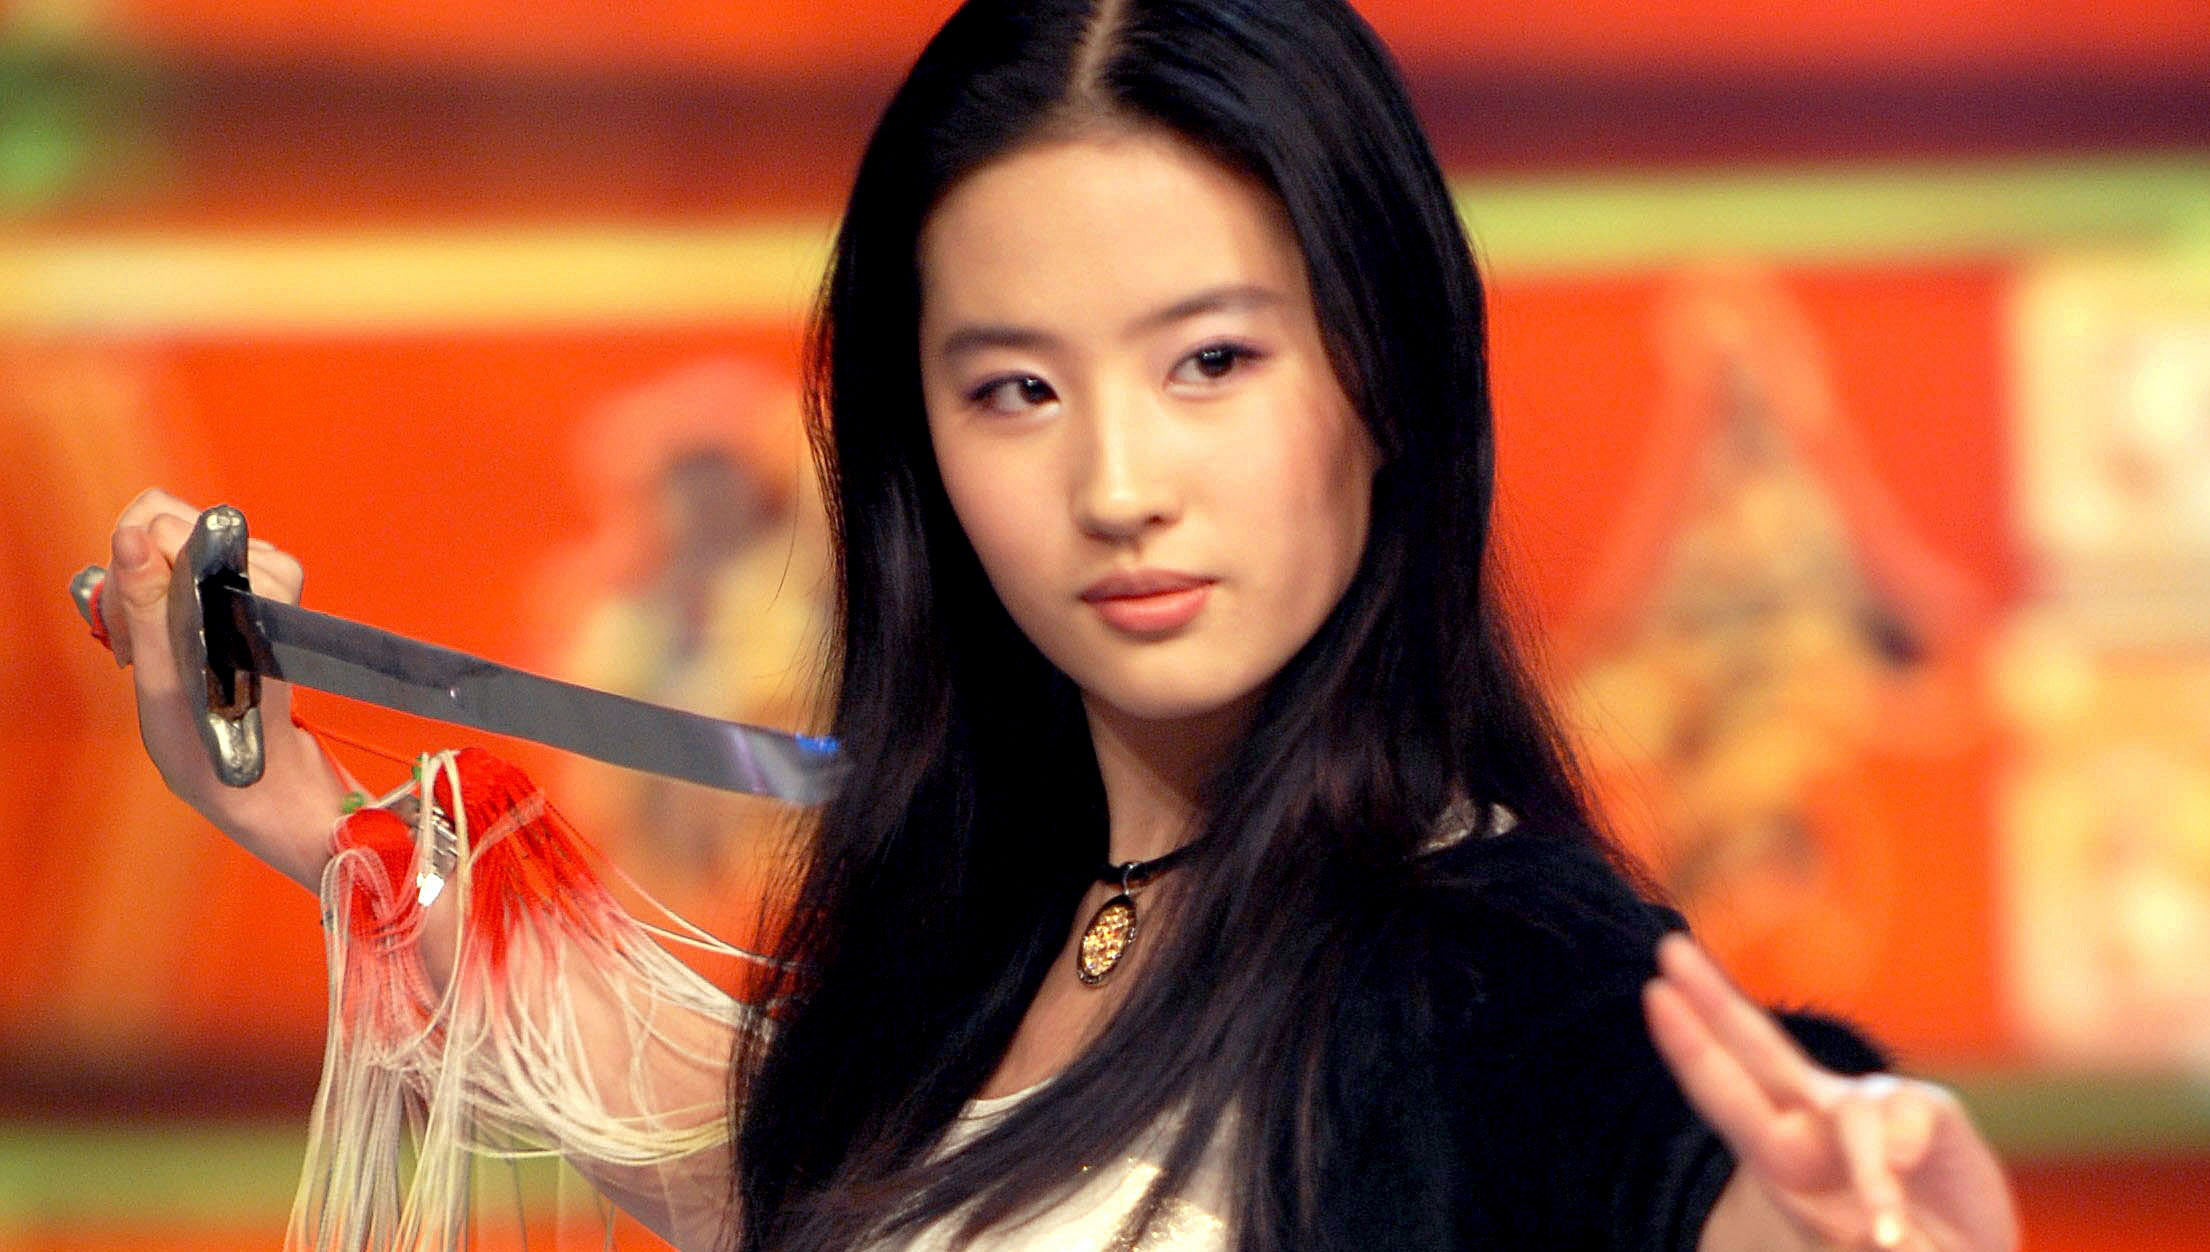 Disney finds its Mulan actress for live-action film